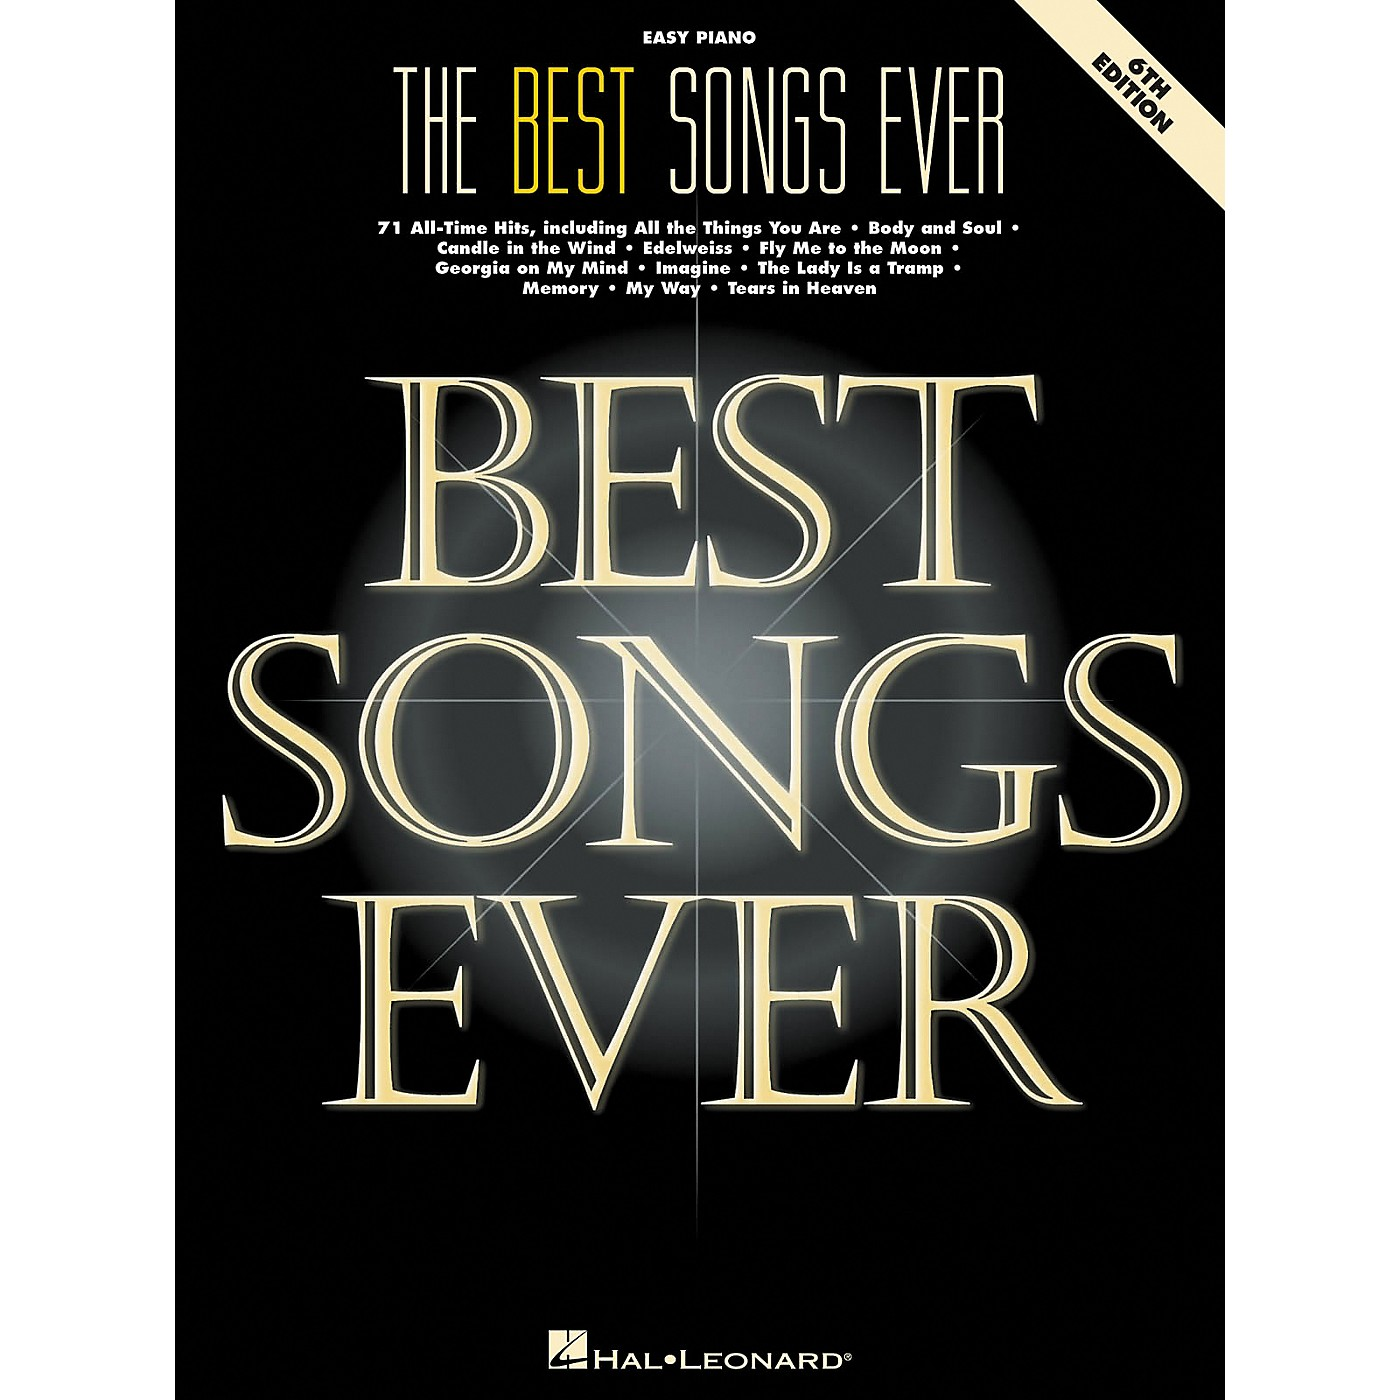 Hal Leonard Best Songs Ever For Easy Piano 6th Edition thumbnail